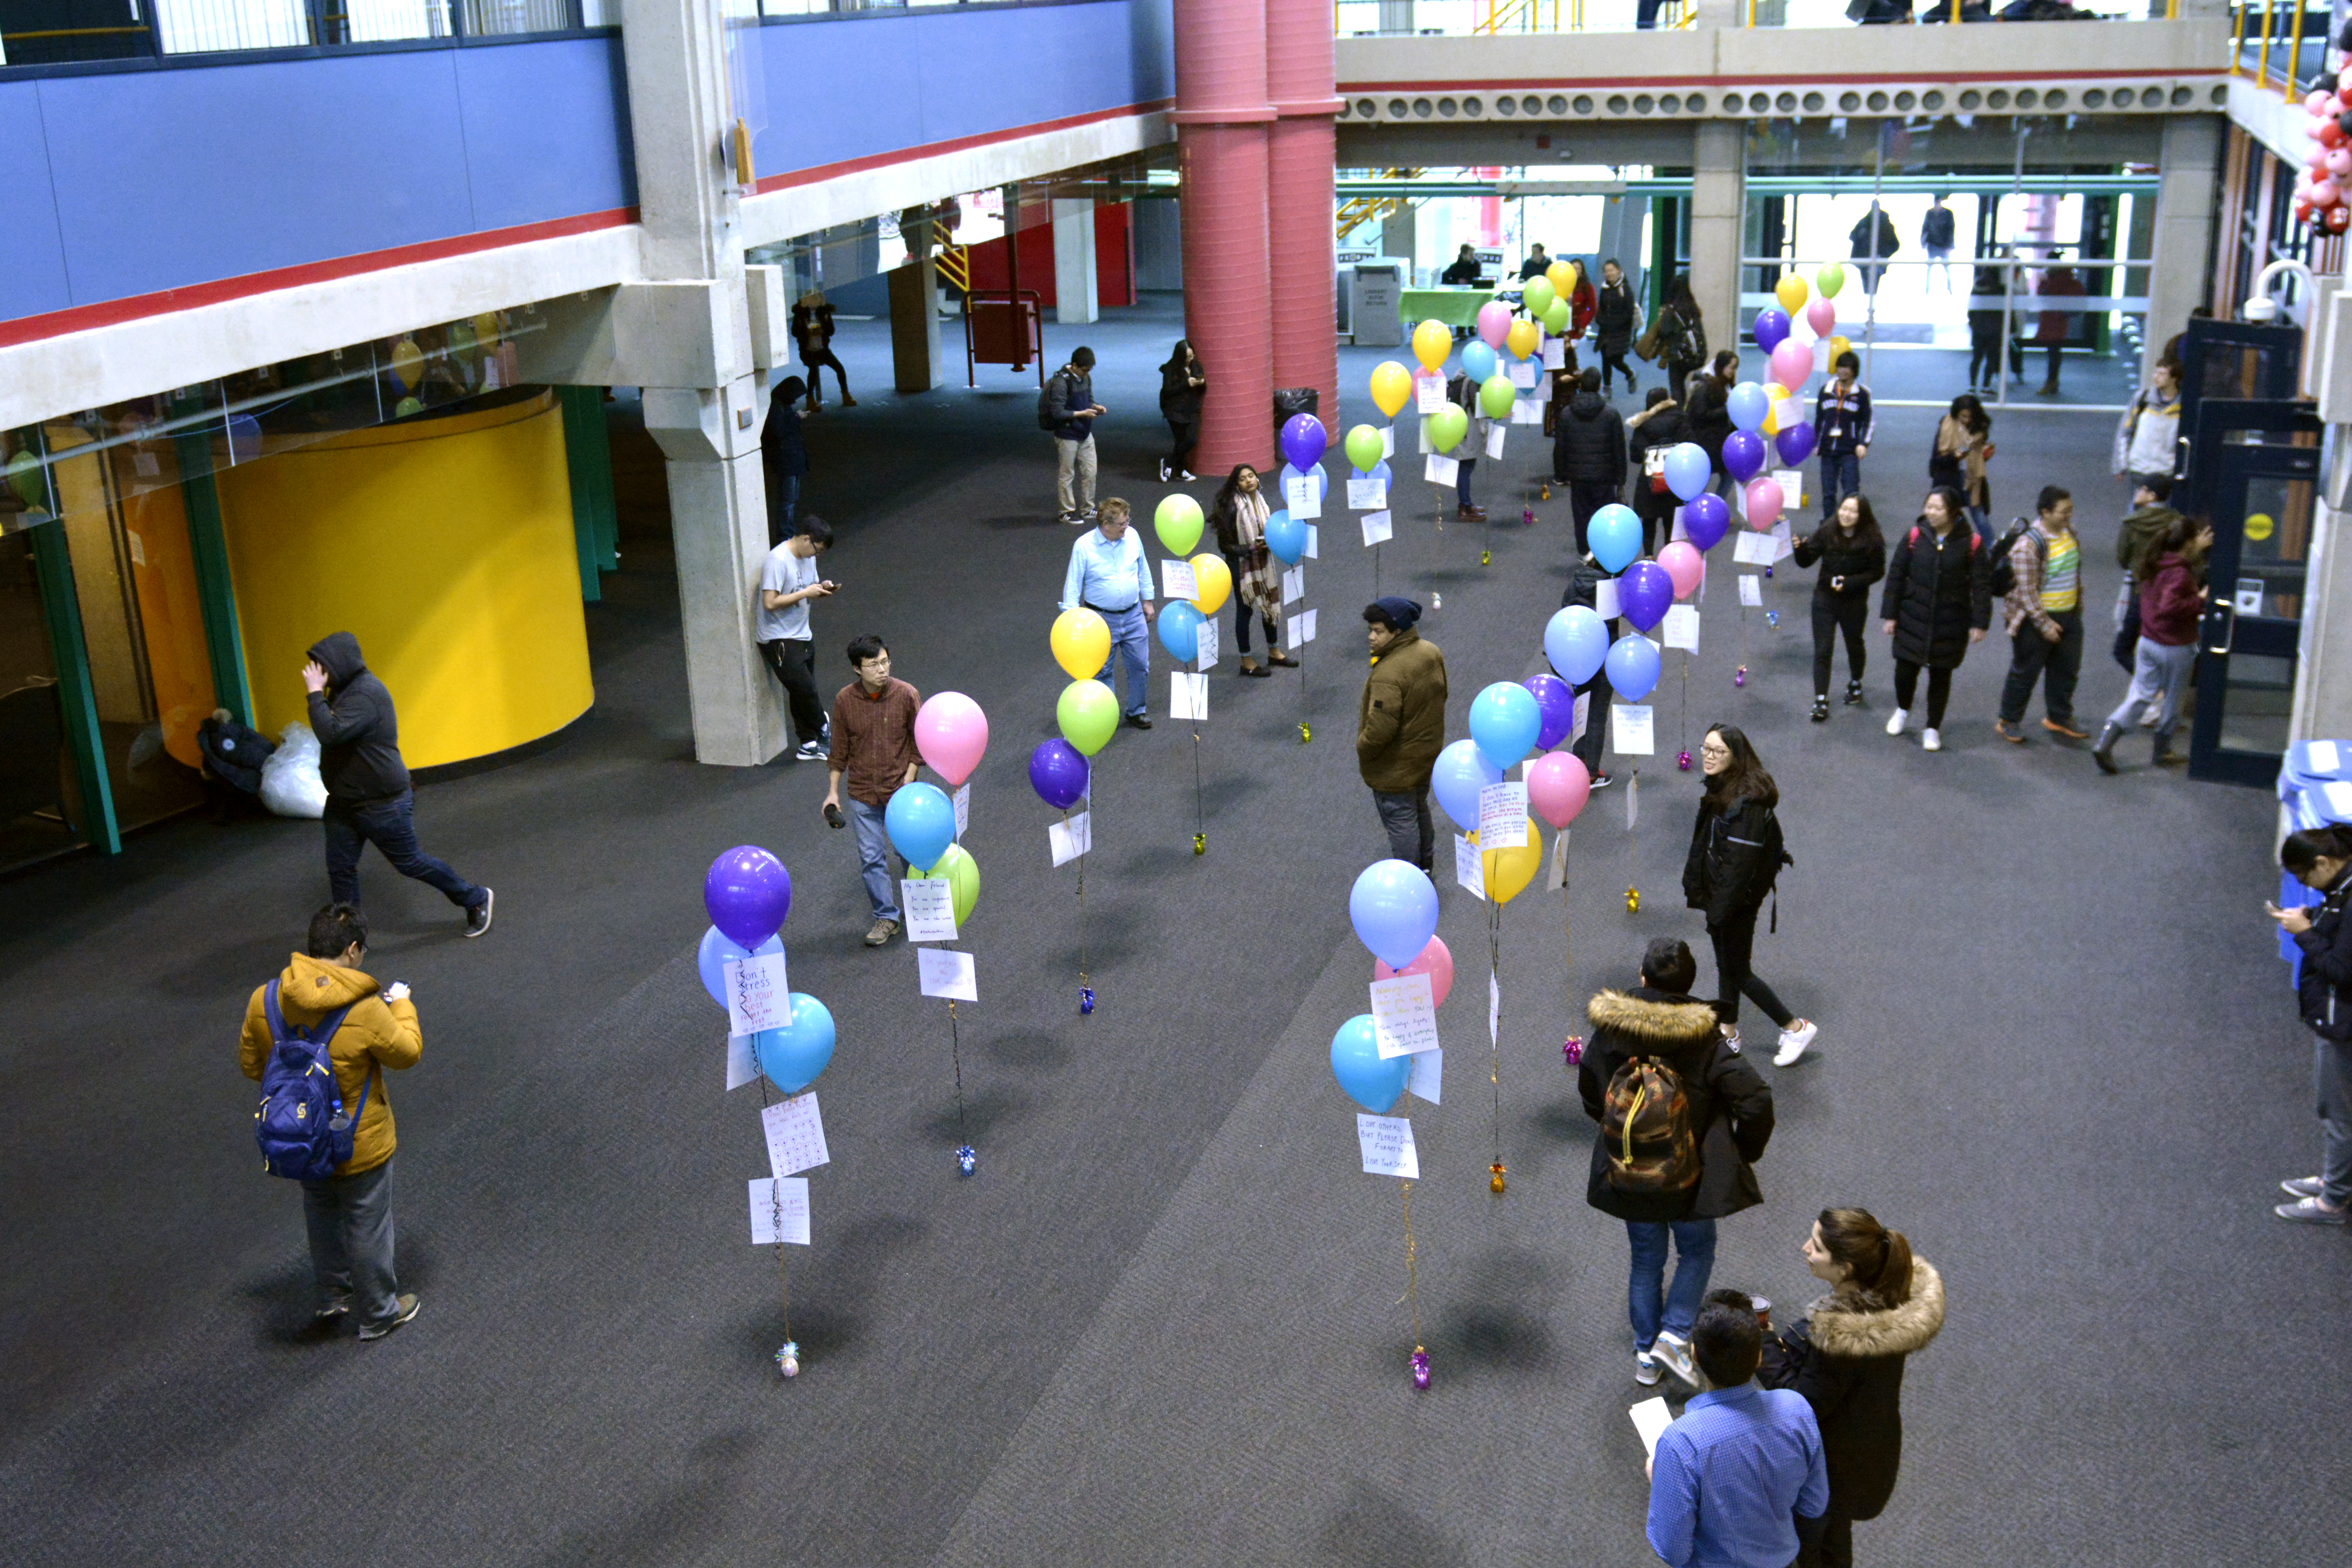 Balloons popped up in the Davis Centre March 31